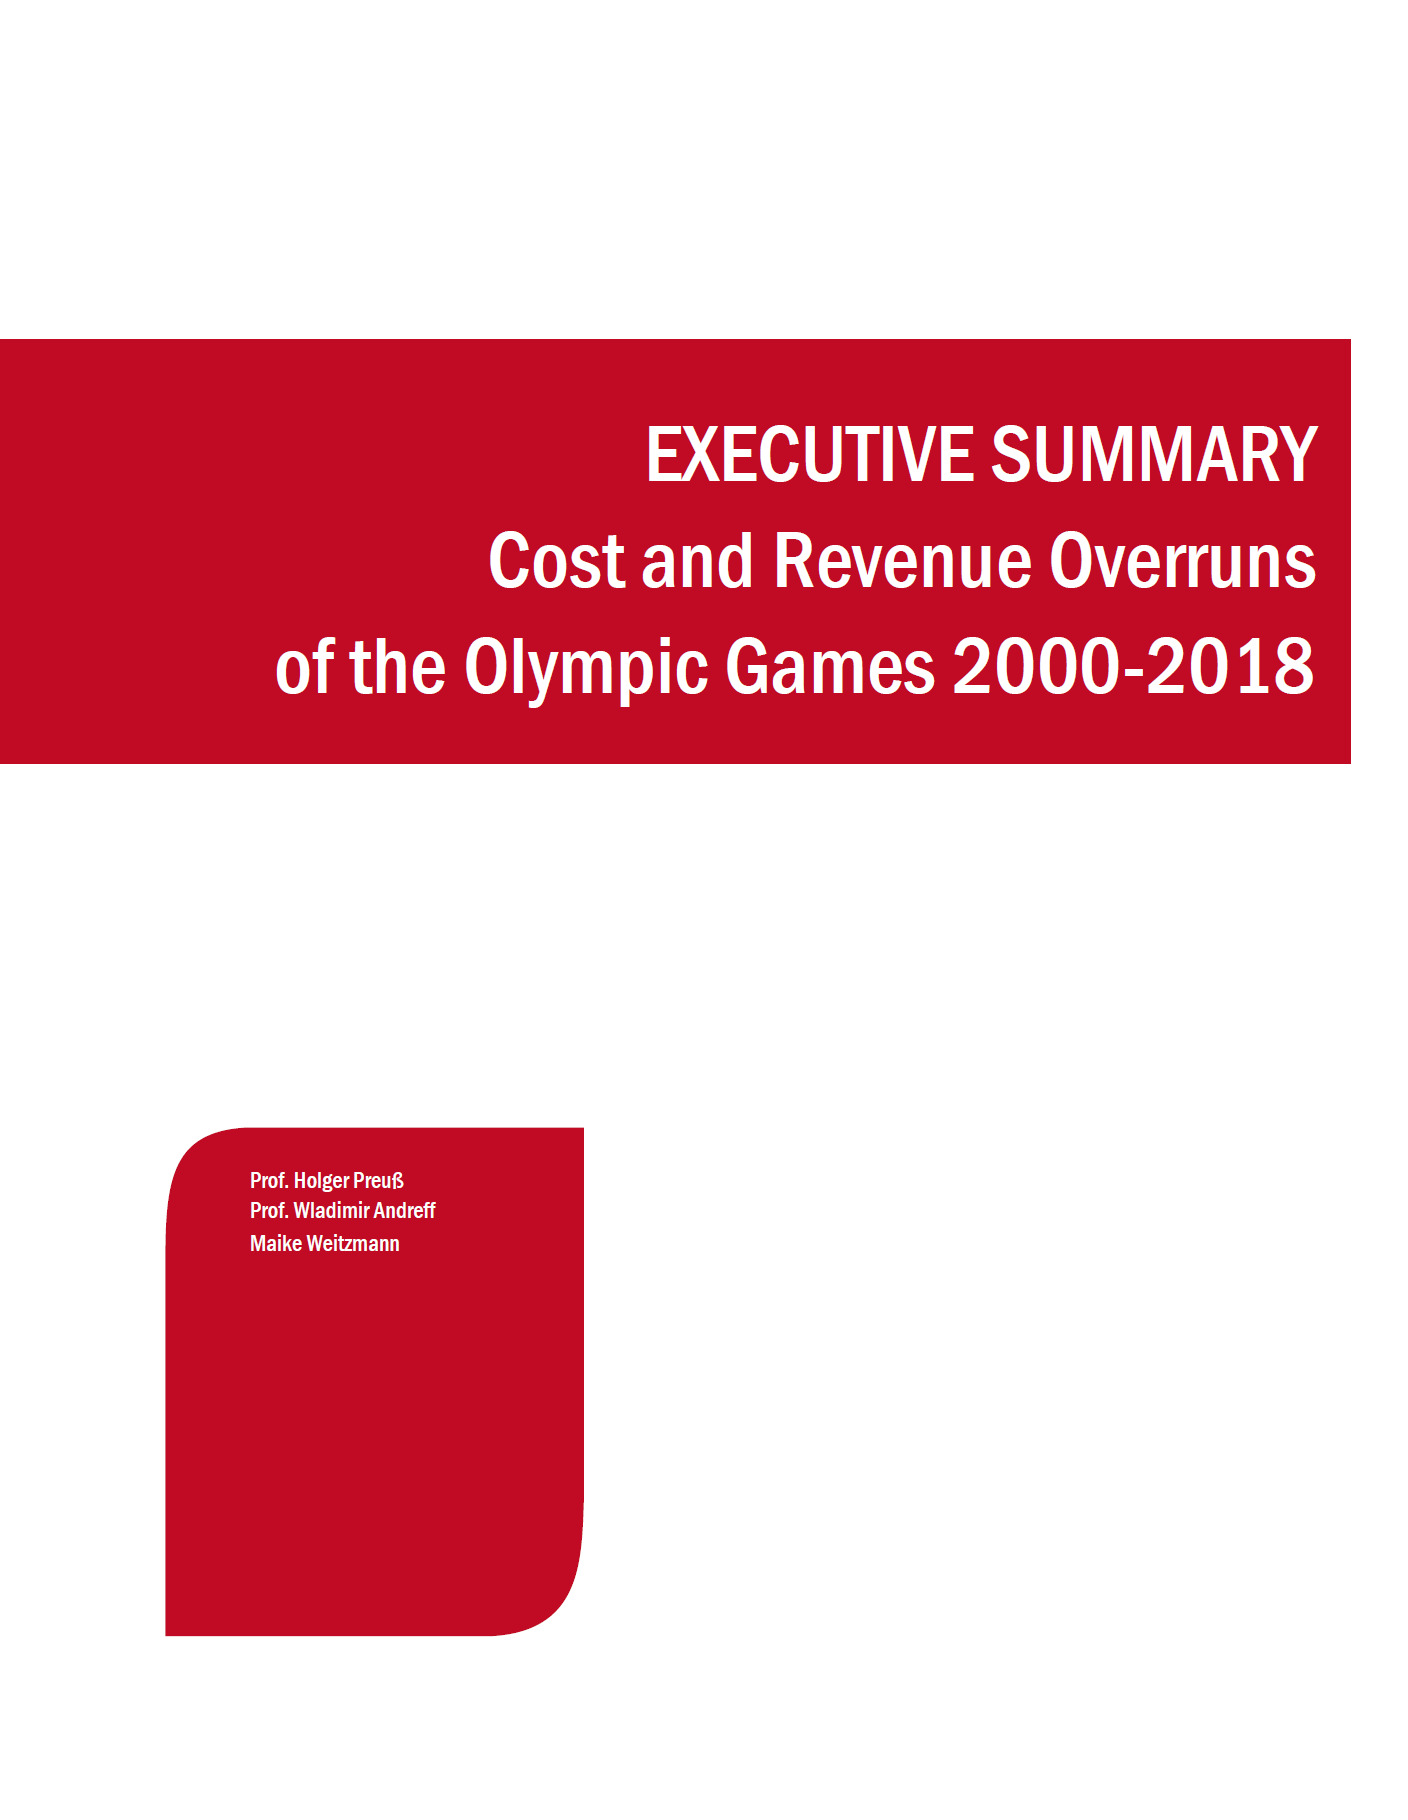 Cost and revenue overruns of the Olympic Games 2000-2018 : executive summary / Holger Preuss, Wladimir Andreff, Maike Weitzmann | Preuss, Holger